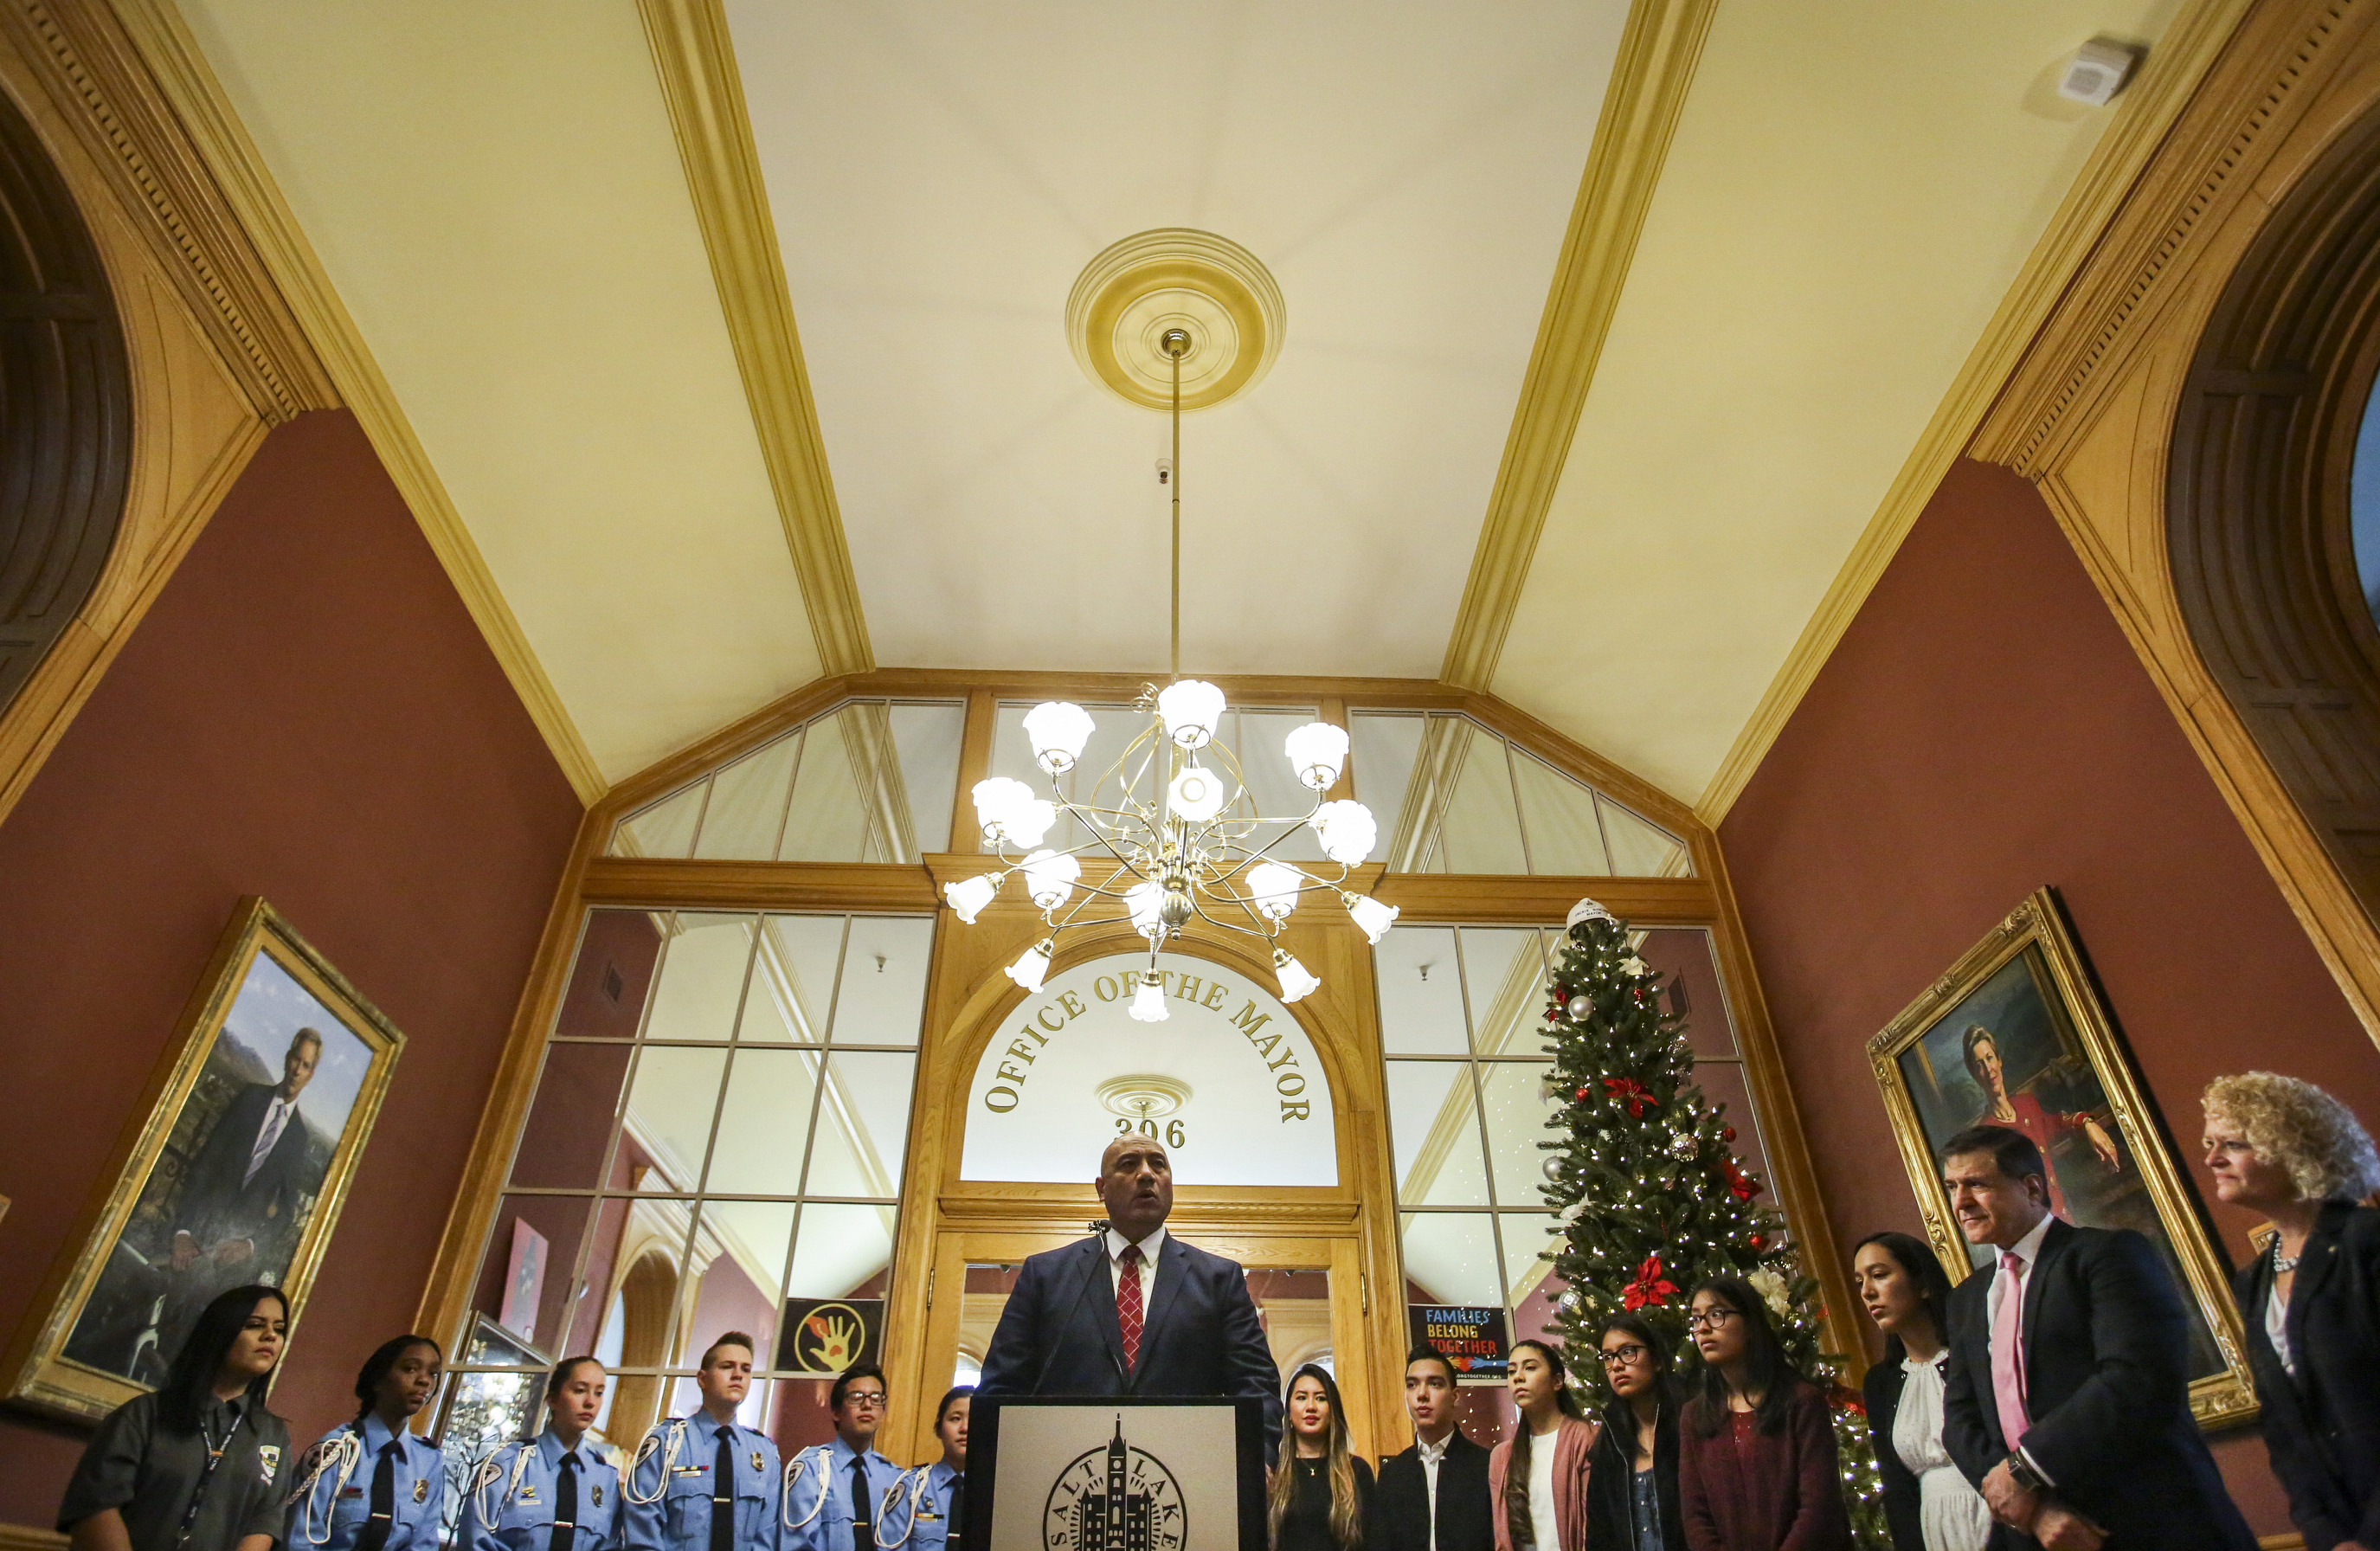 Richard Kaufusi, front center,director of the University of Utah Eccles School of Business Opportunity Scholars Program, speaks during the announcement of the HOPE Scholarship at the Mayor's Office at the Salt Lake City-County Building on Friday, Dec. 20, 2019. The scholarship is designed to support the city's low-income student residents who are the first in their families to attend college.